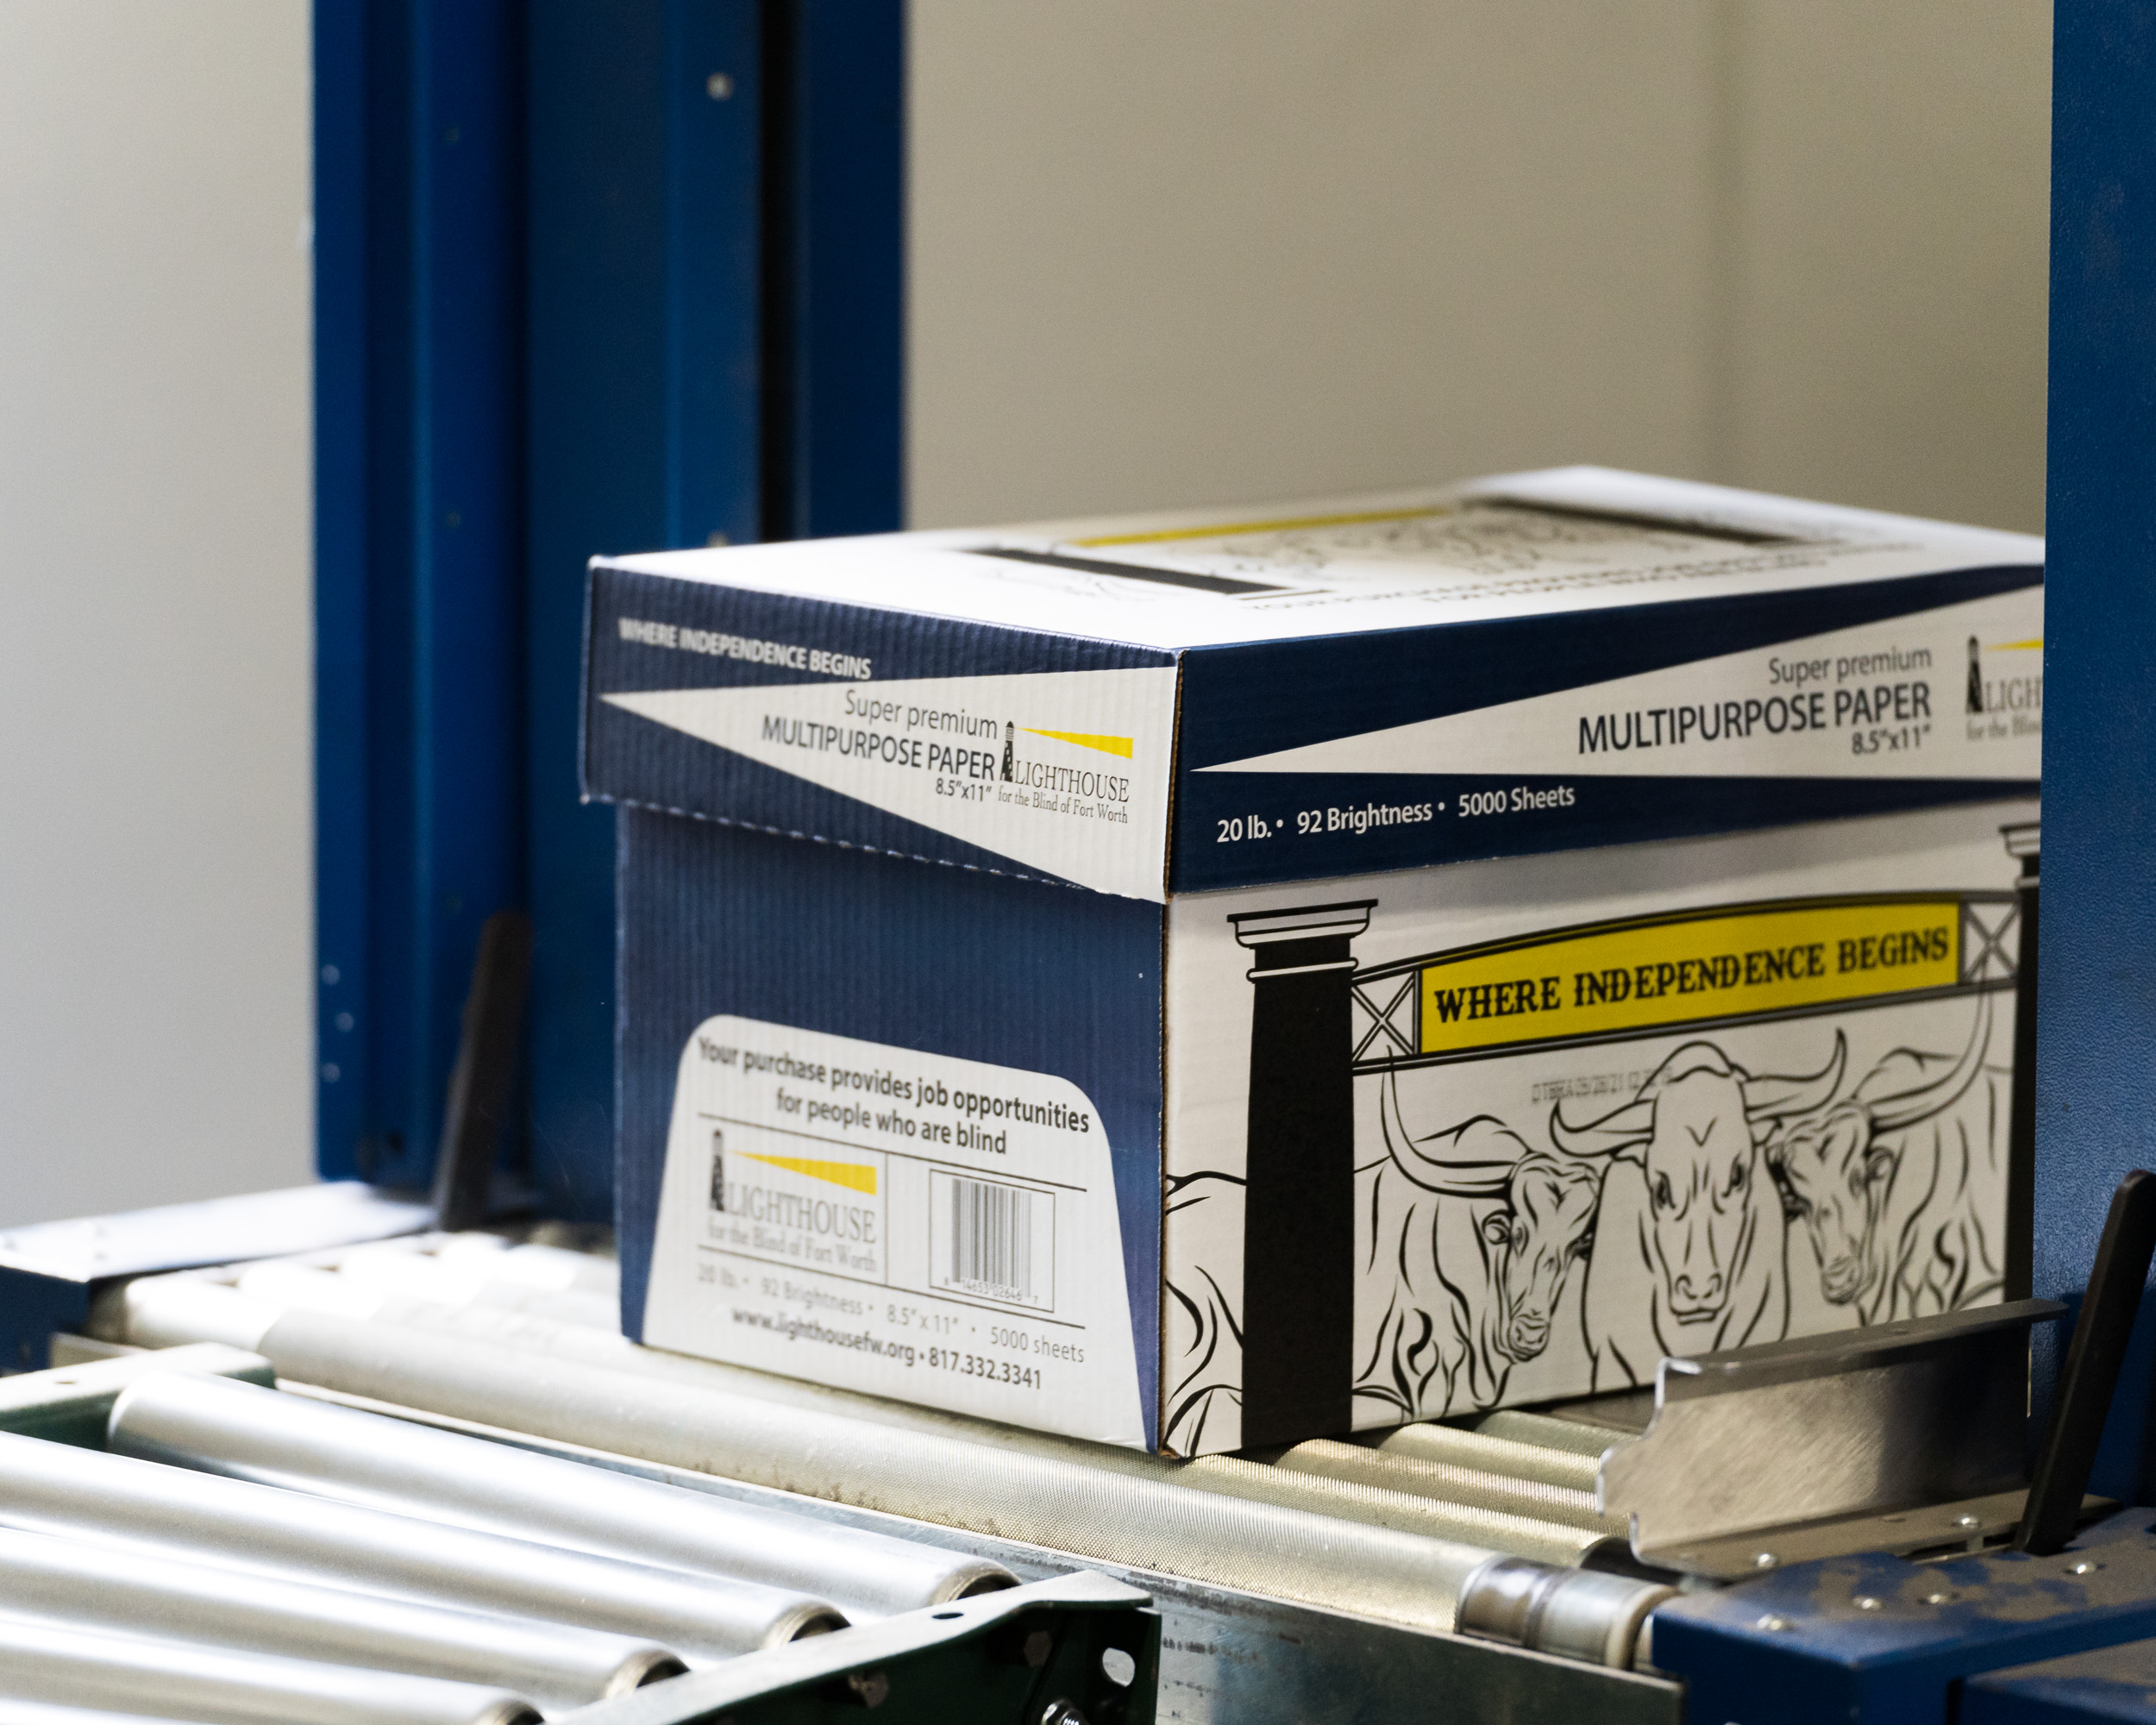 A box of paper on a rolling belt